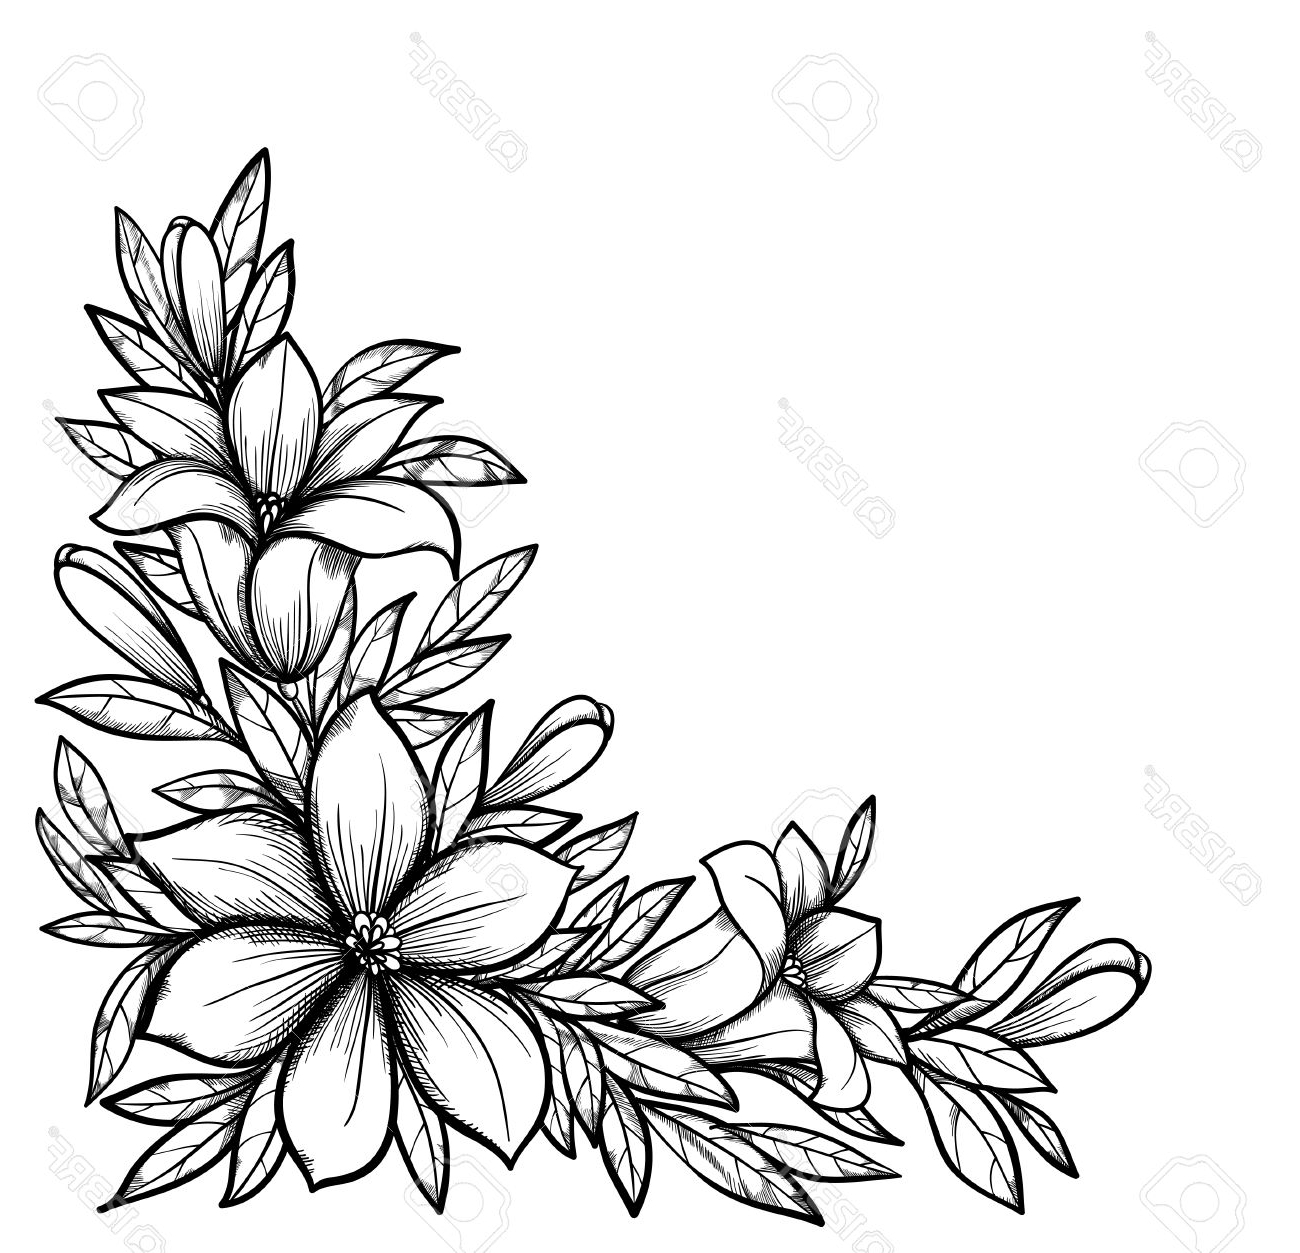 1300x1253 Flowers Drawing White And Black Beautiful Black And White Branch